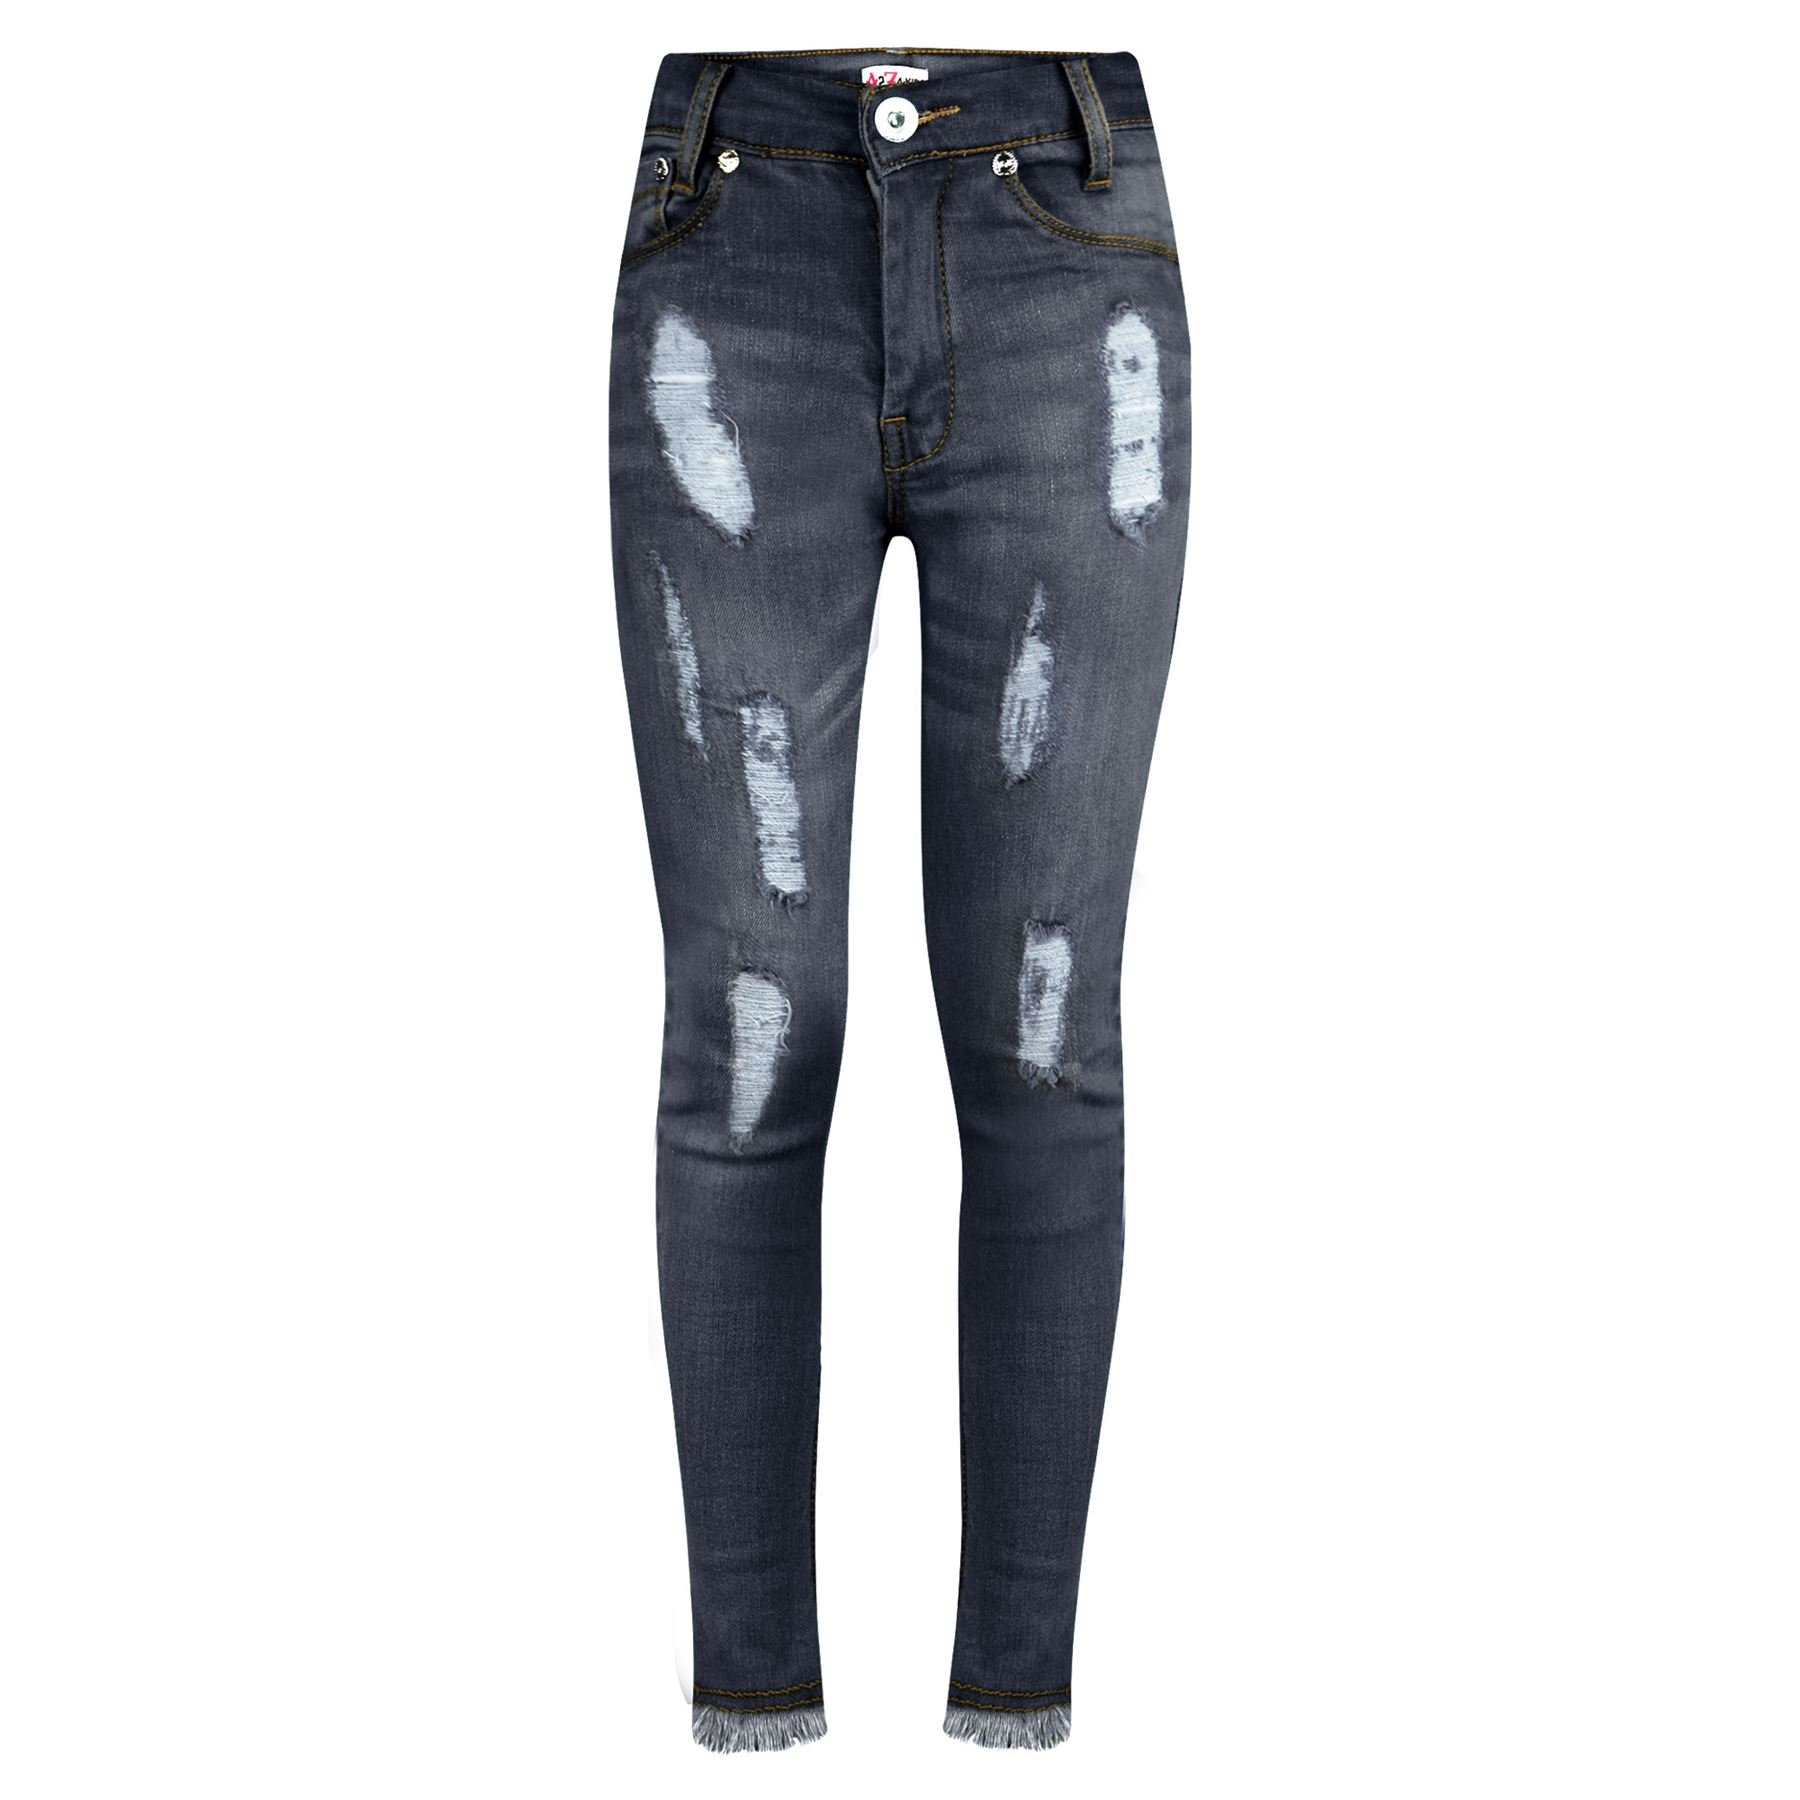 A2Z 4 Kids® Girls Stretchy Jeans Kids Ripped_GJ01 Denim Pants Trousers Jeggings Age 5-13 Years